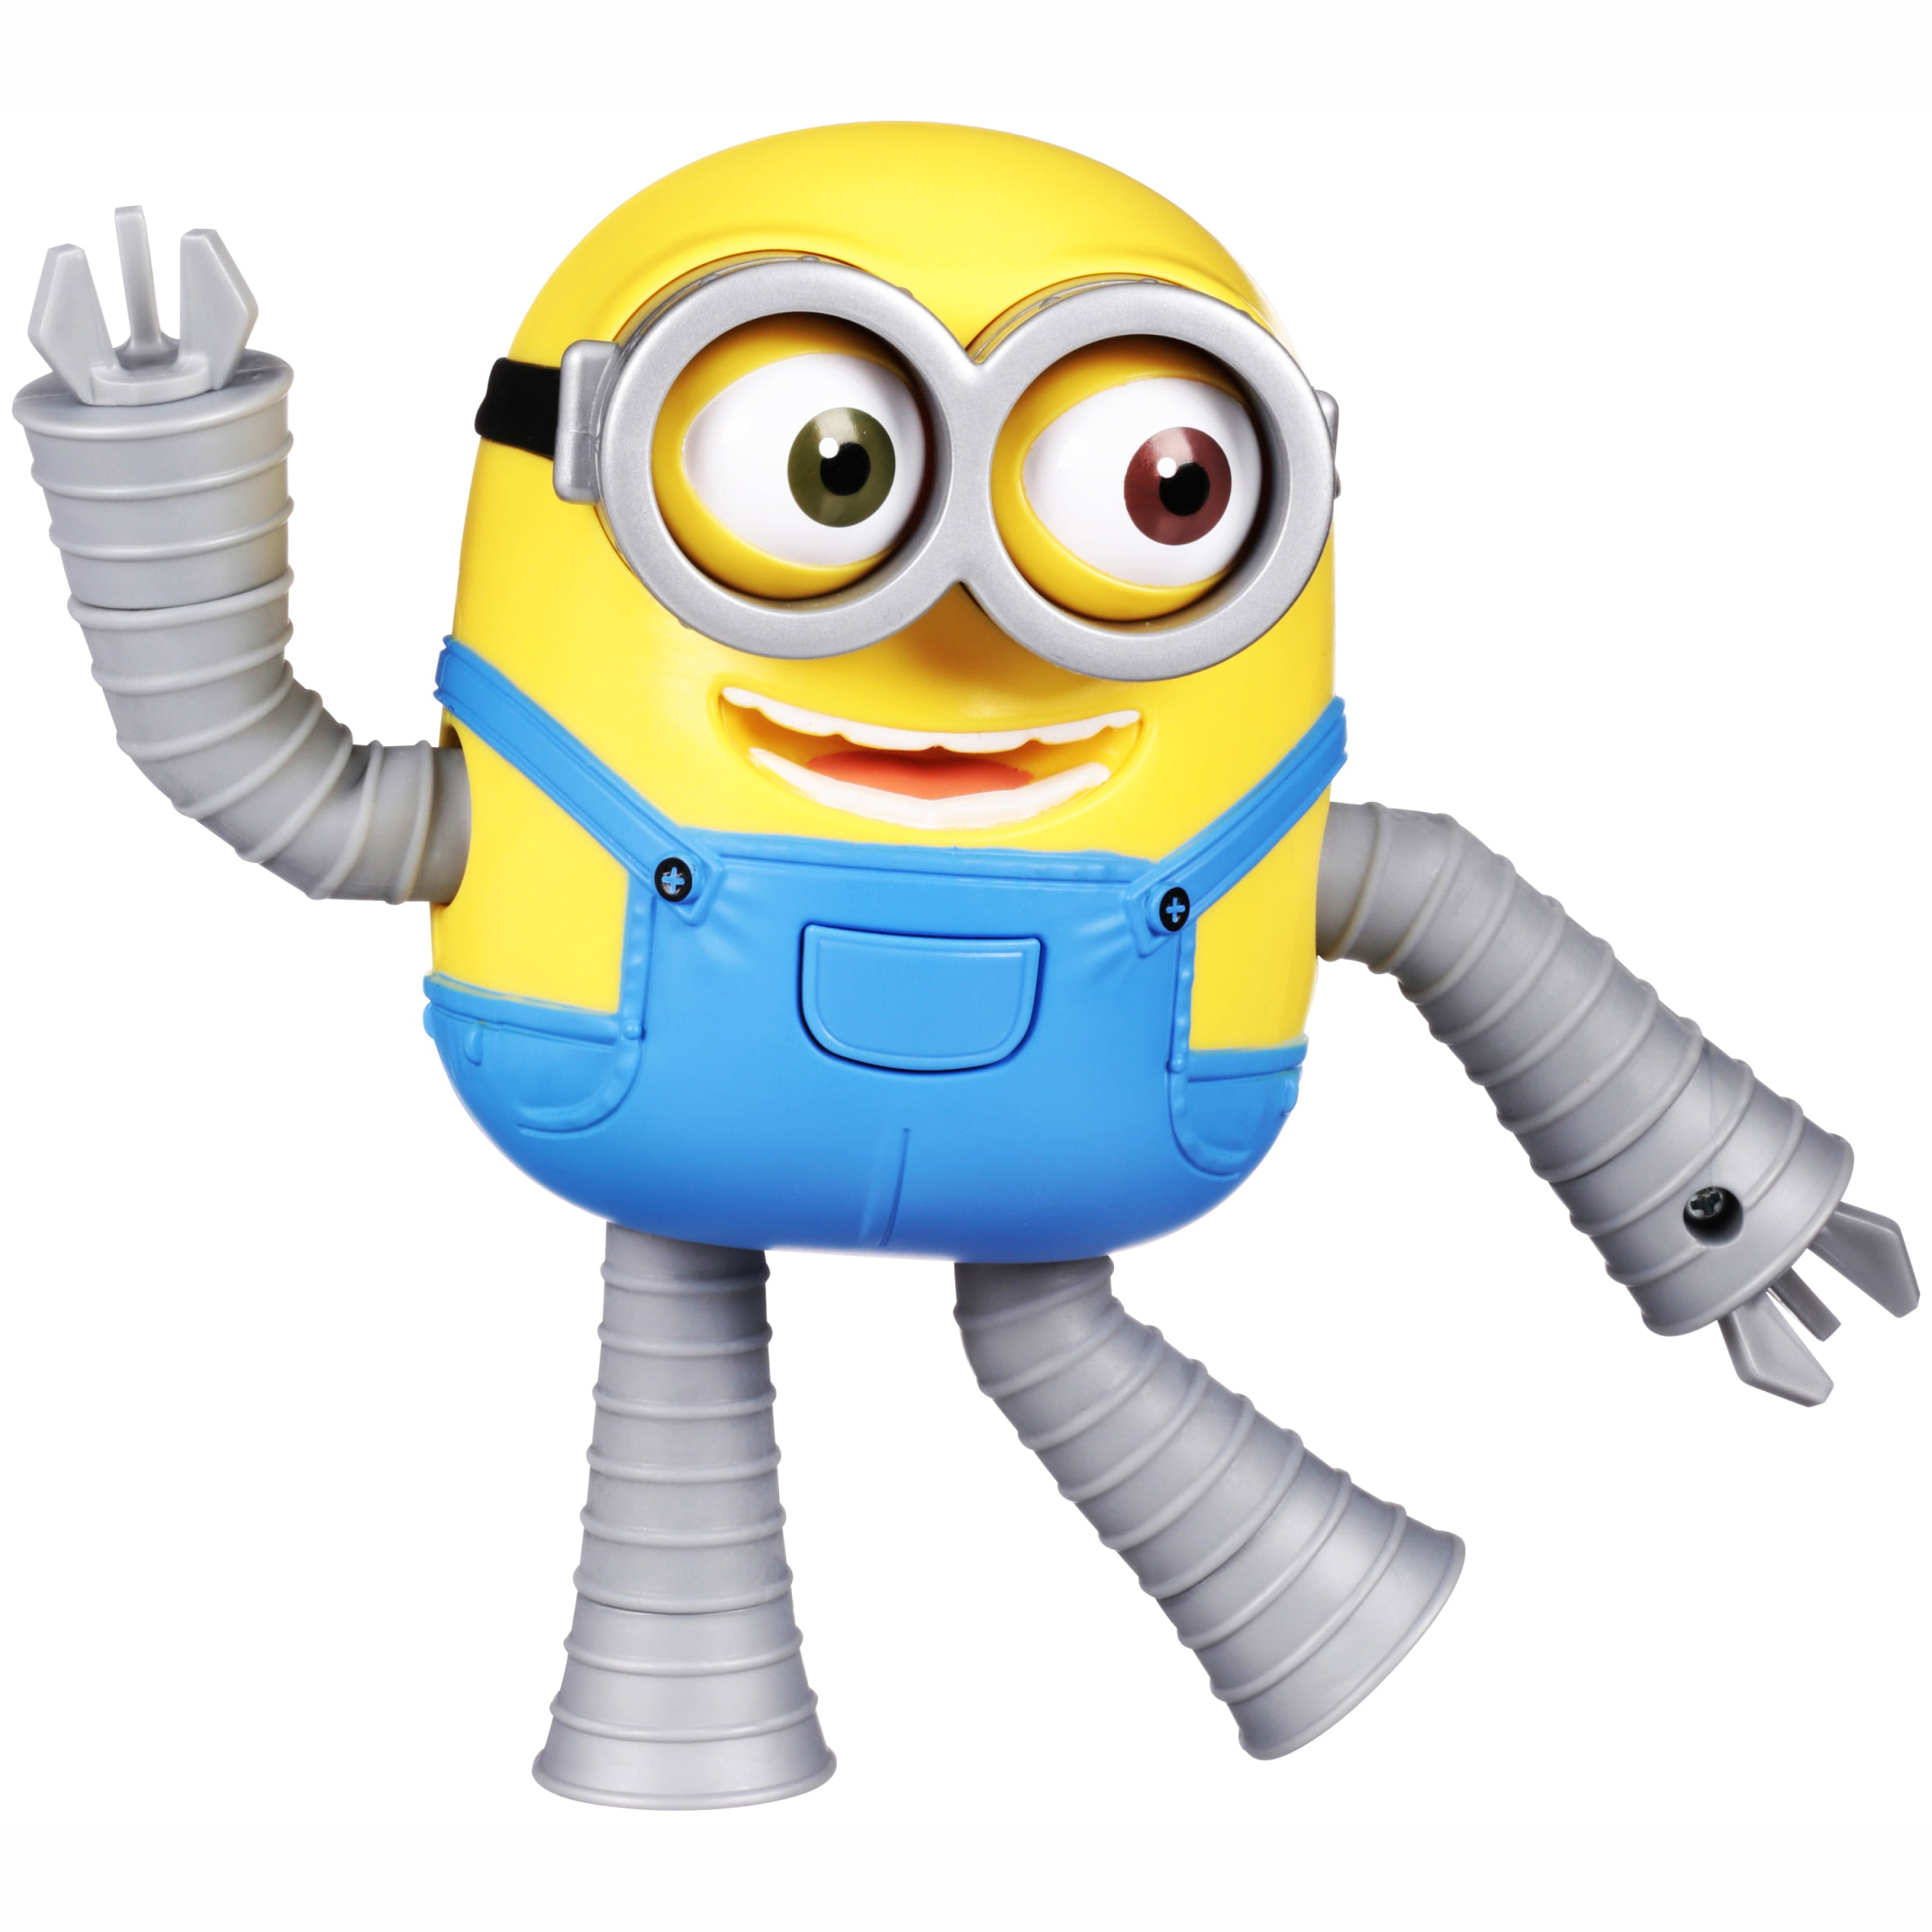 Despicable Me 3 Minion Made Robot Minion Bob Deluxe Action Figure by Thinkway Toys